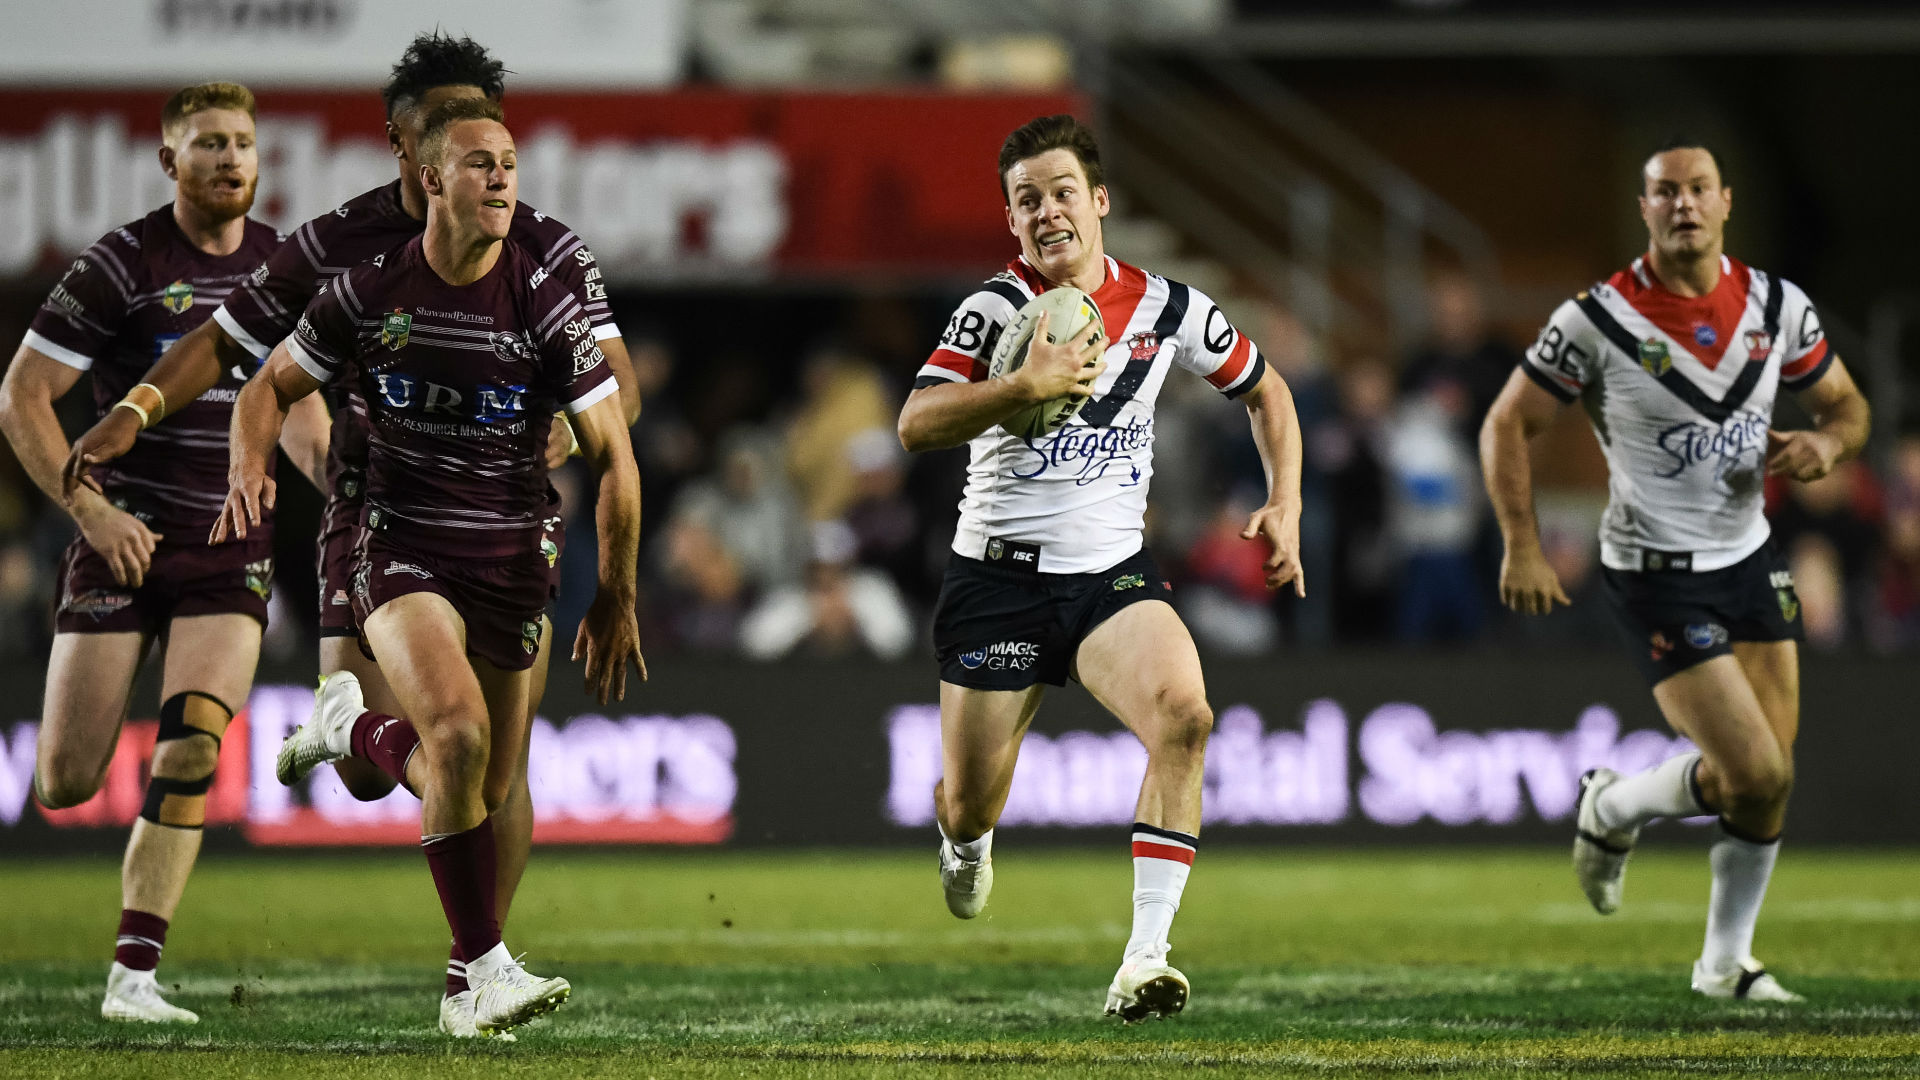 Extended Highlights: Sea Eagles v Roosters - Round 19, 2018